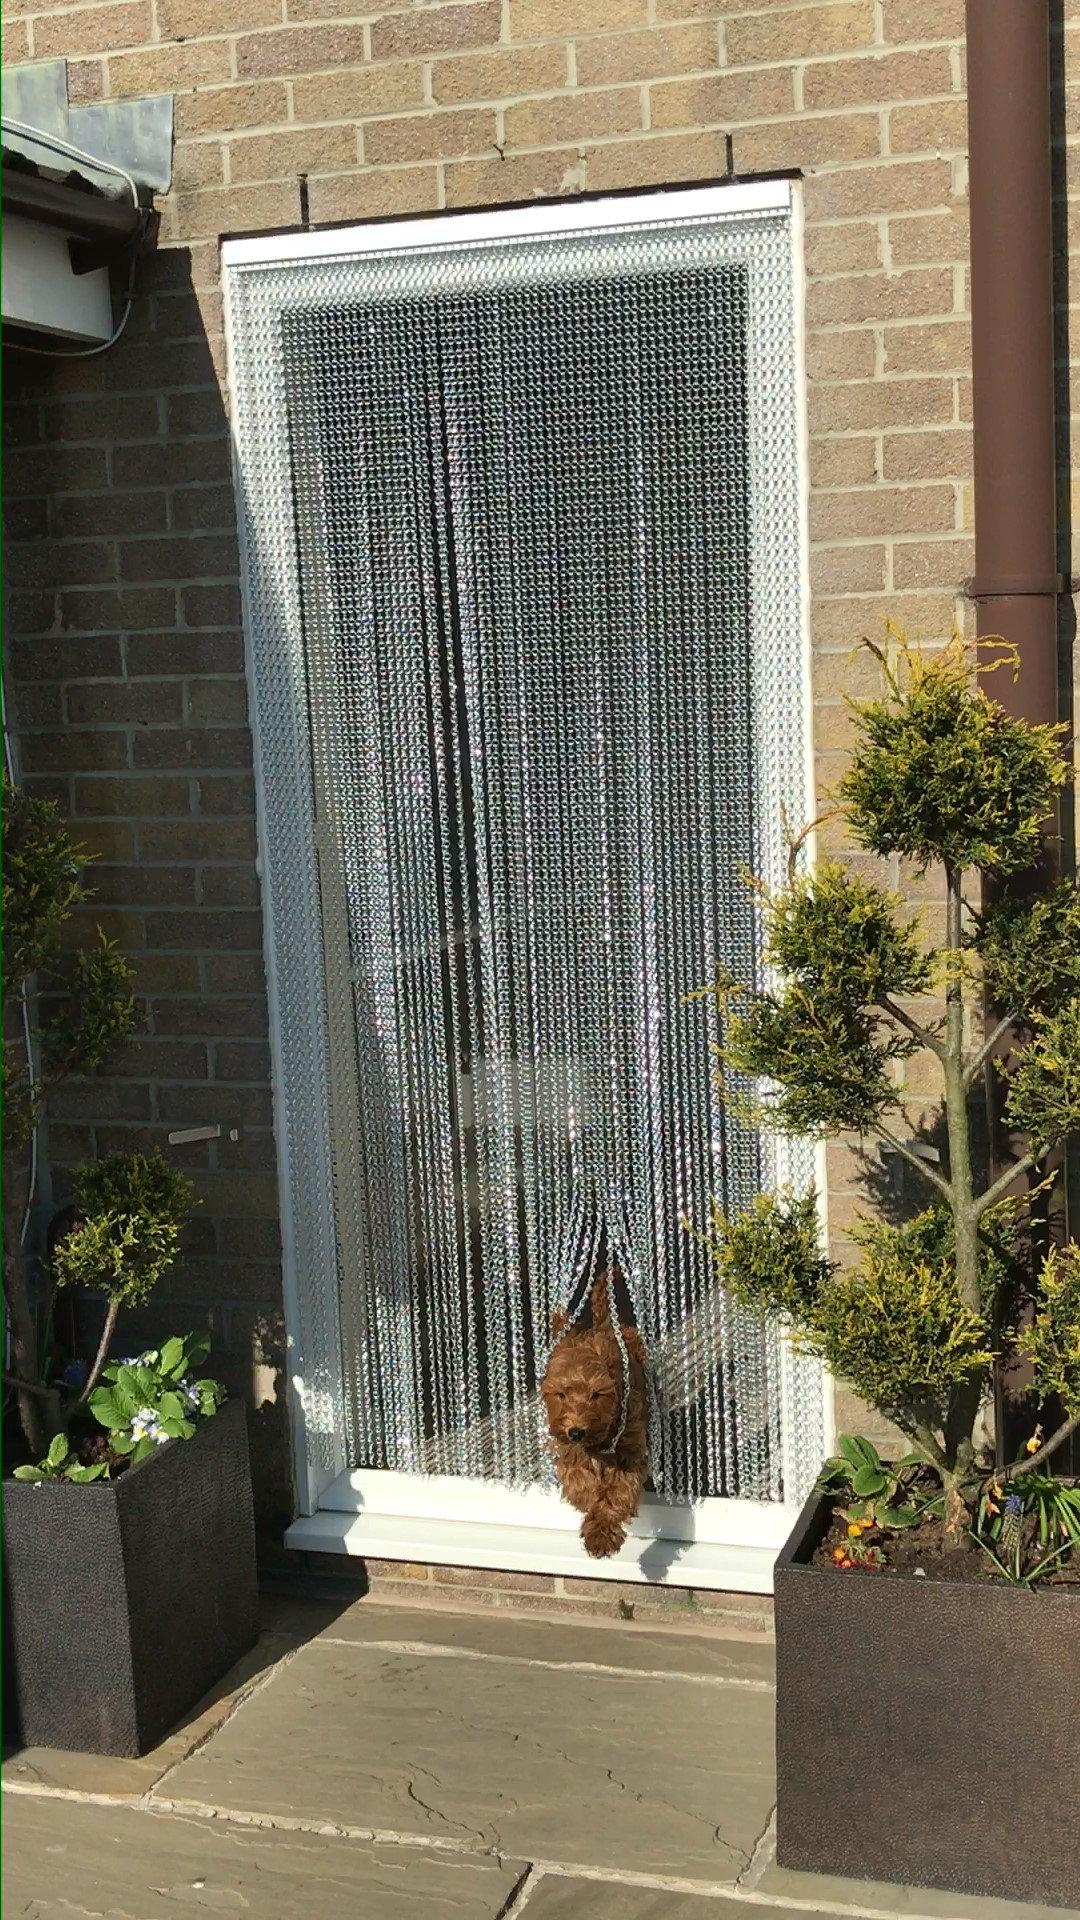 Pet Friendly Chain Fly Screens